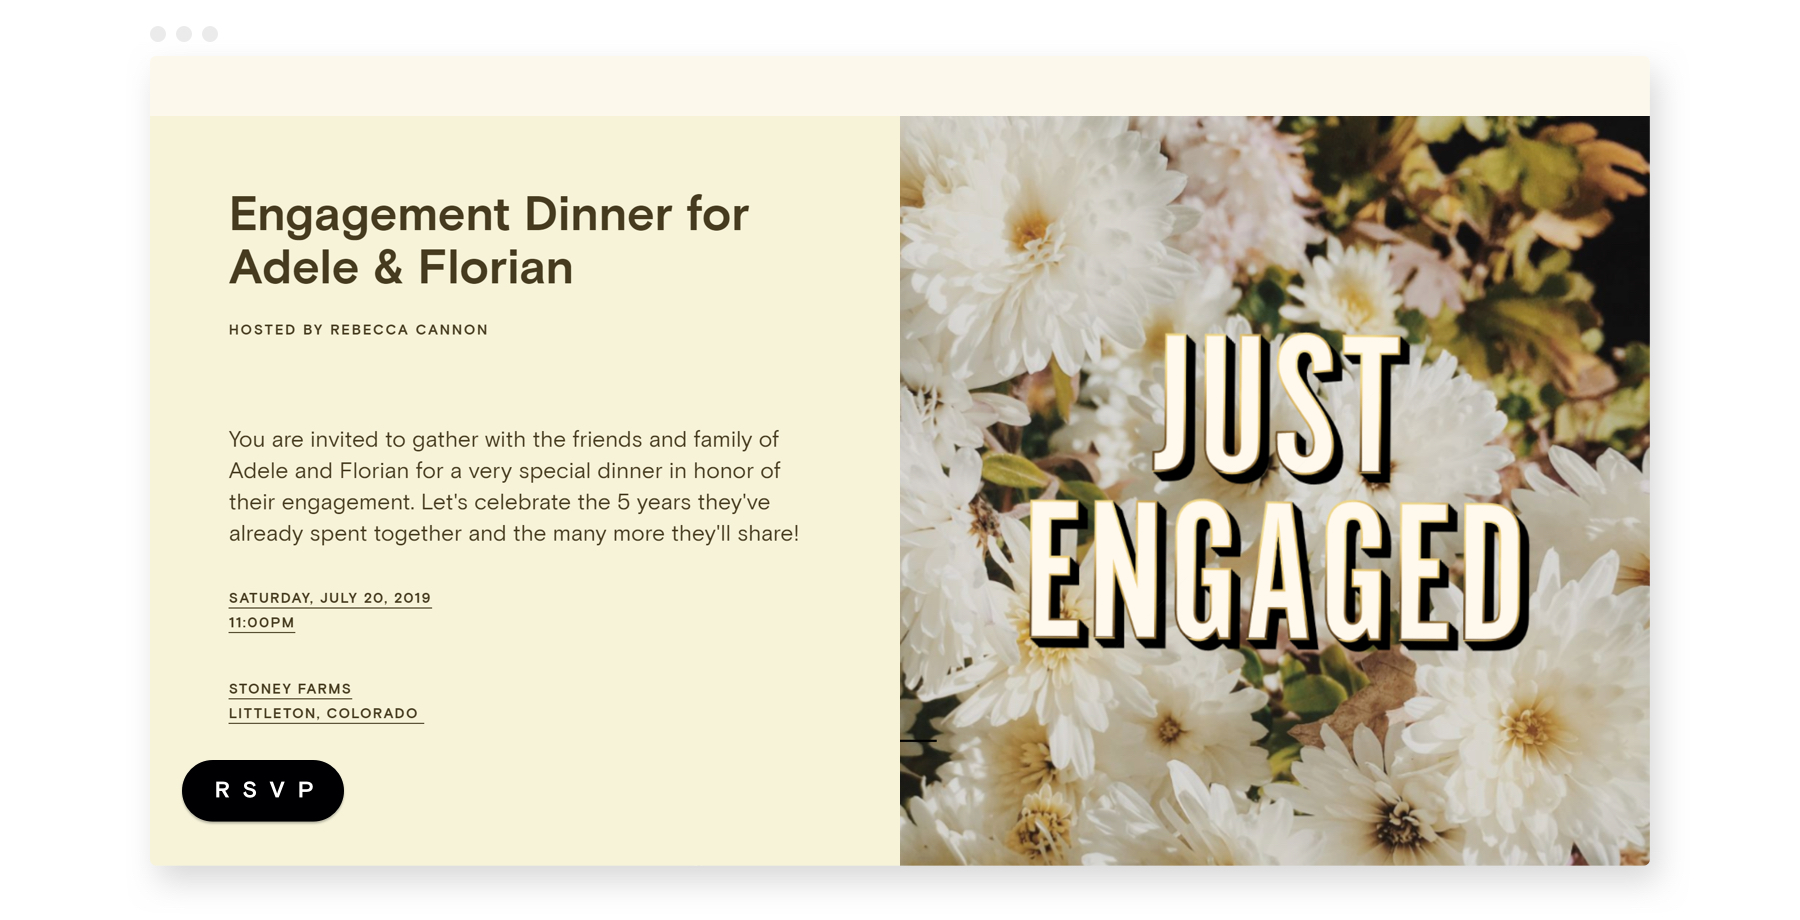 engagement party invitations from Paperless Post